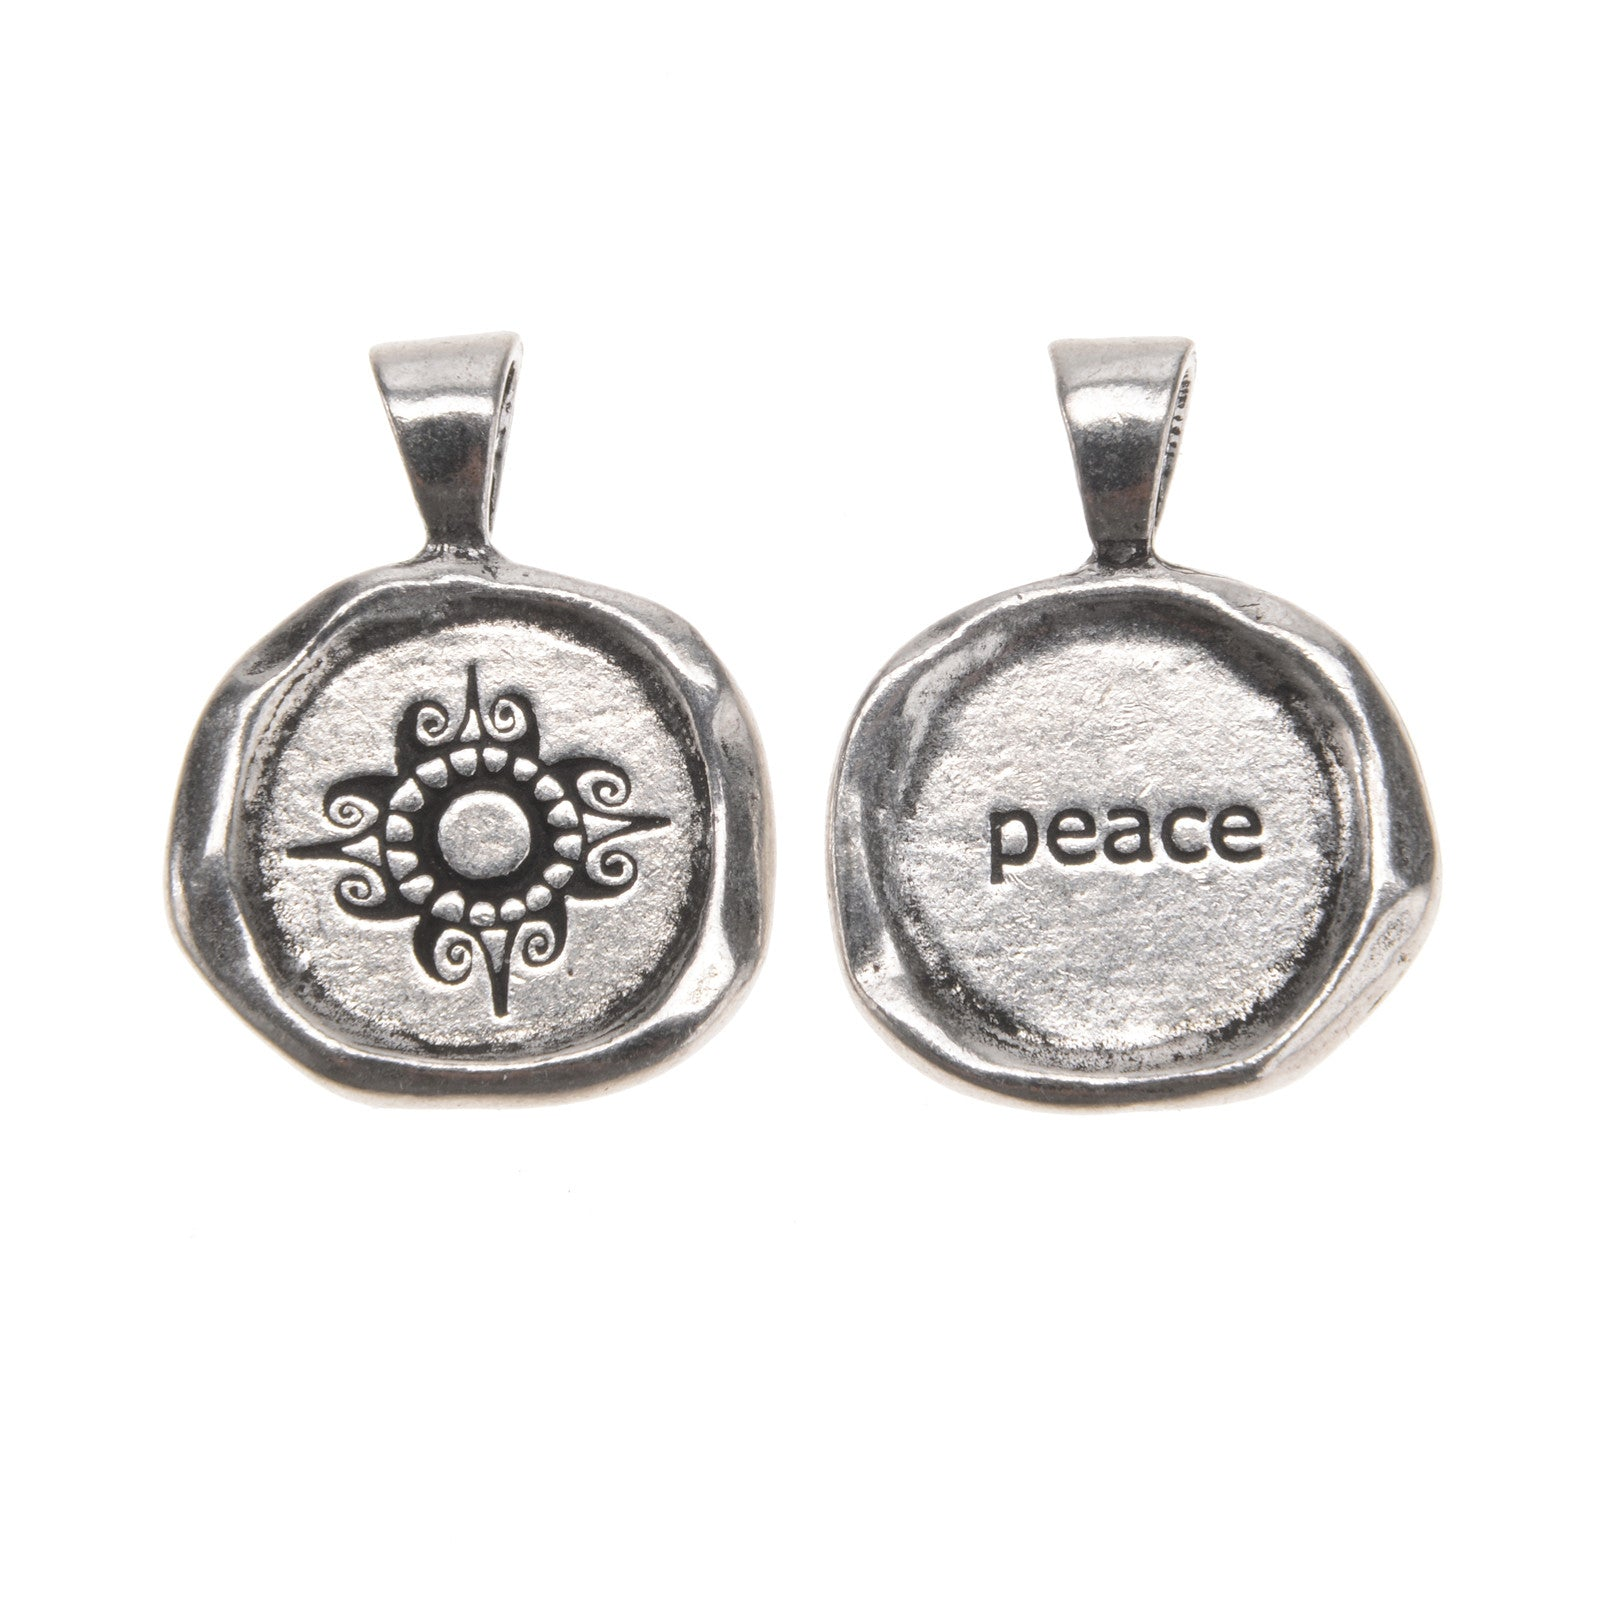 Peace Wax Seal - Whitney Howard Designs